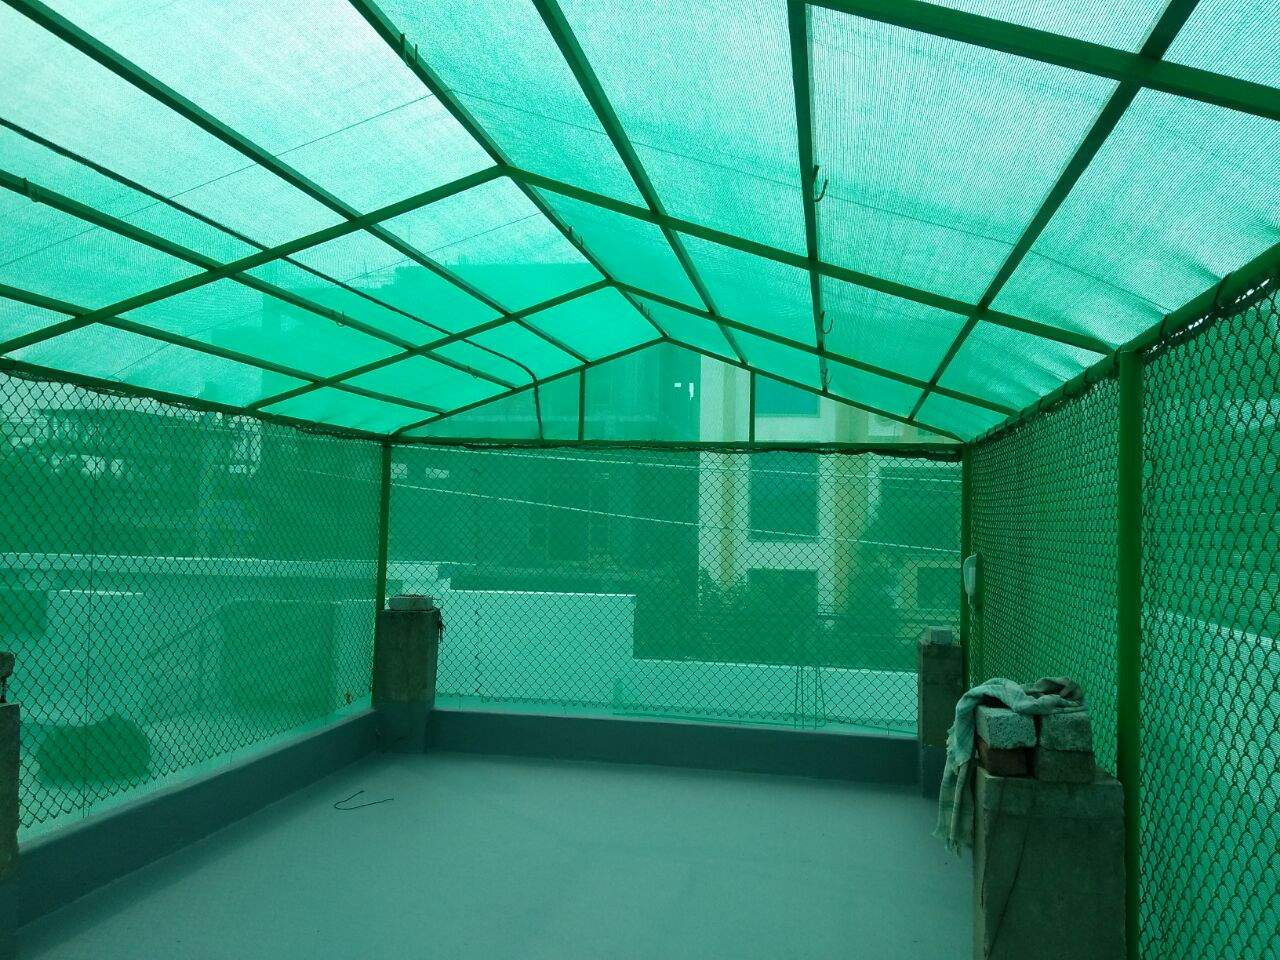 Sun Control Film suppliers in chennai